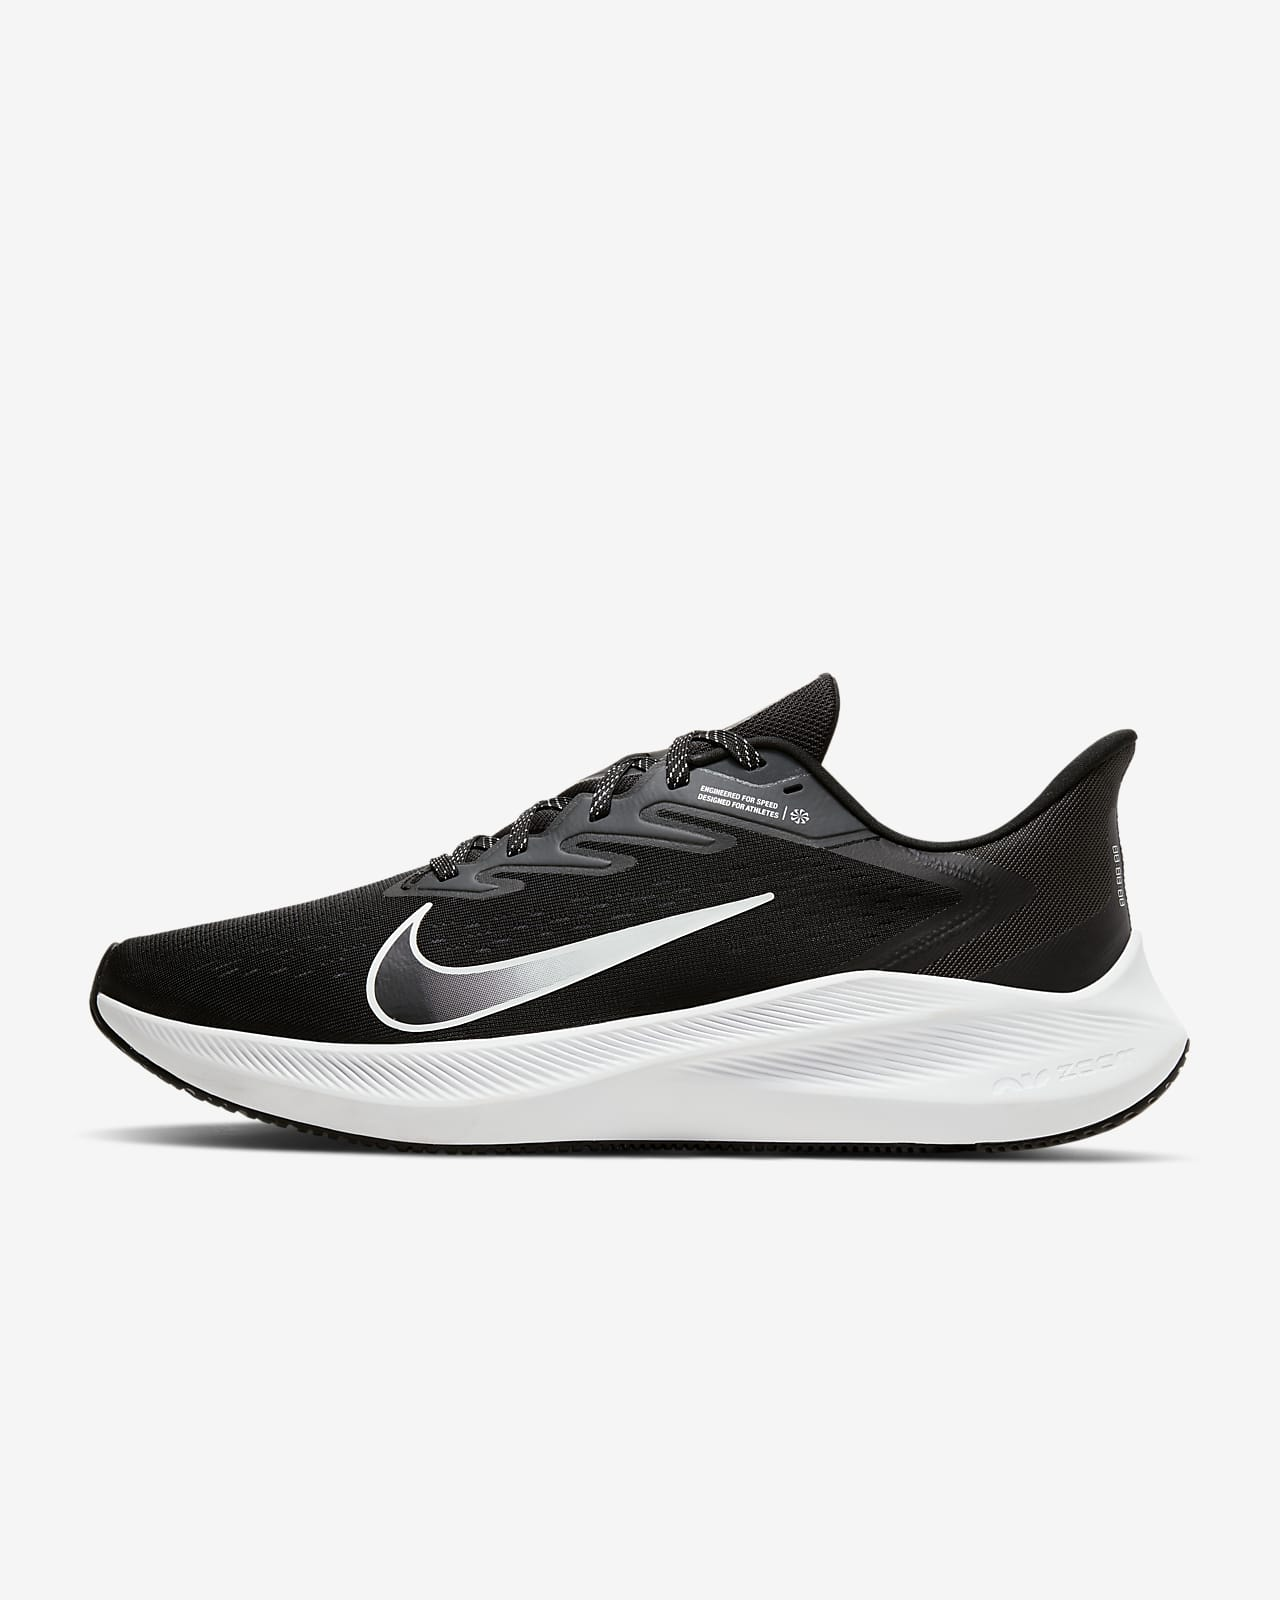 Chaussure de running Nike Air Zoom Winflo 7 pour Homme